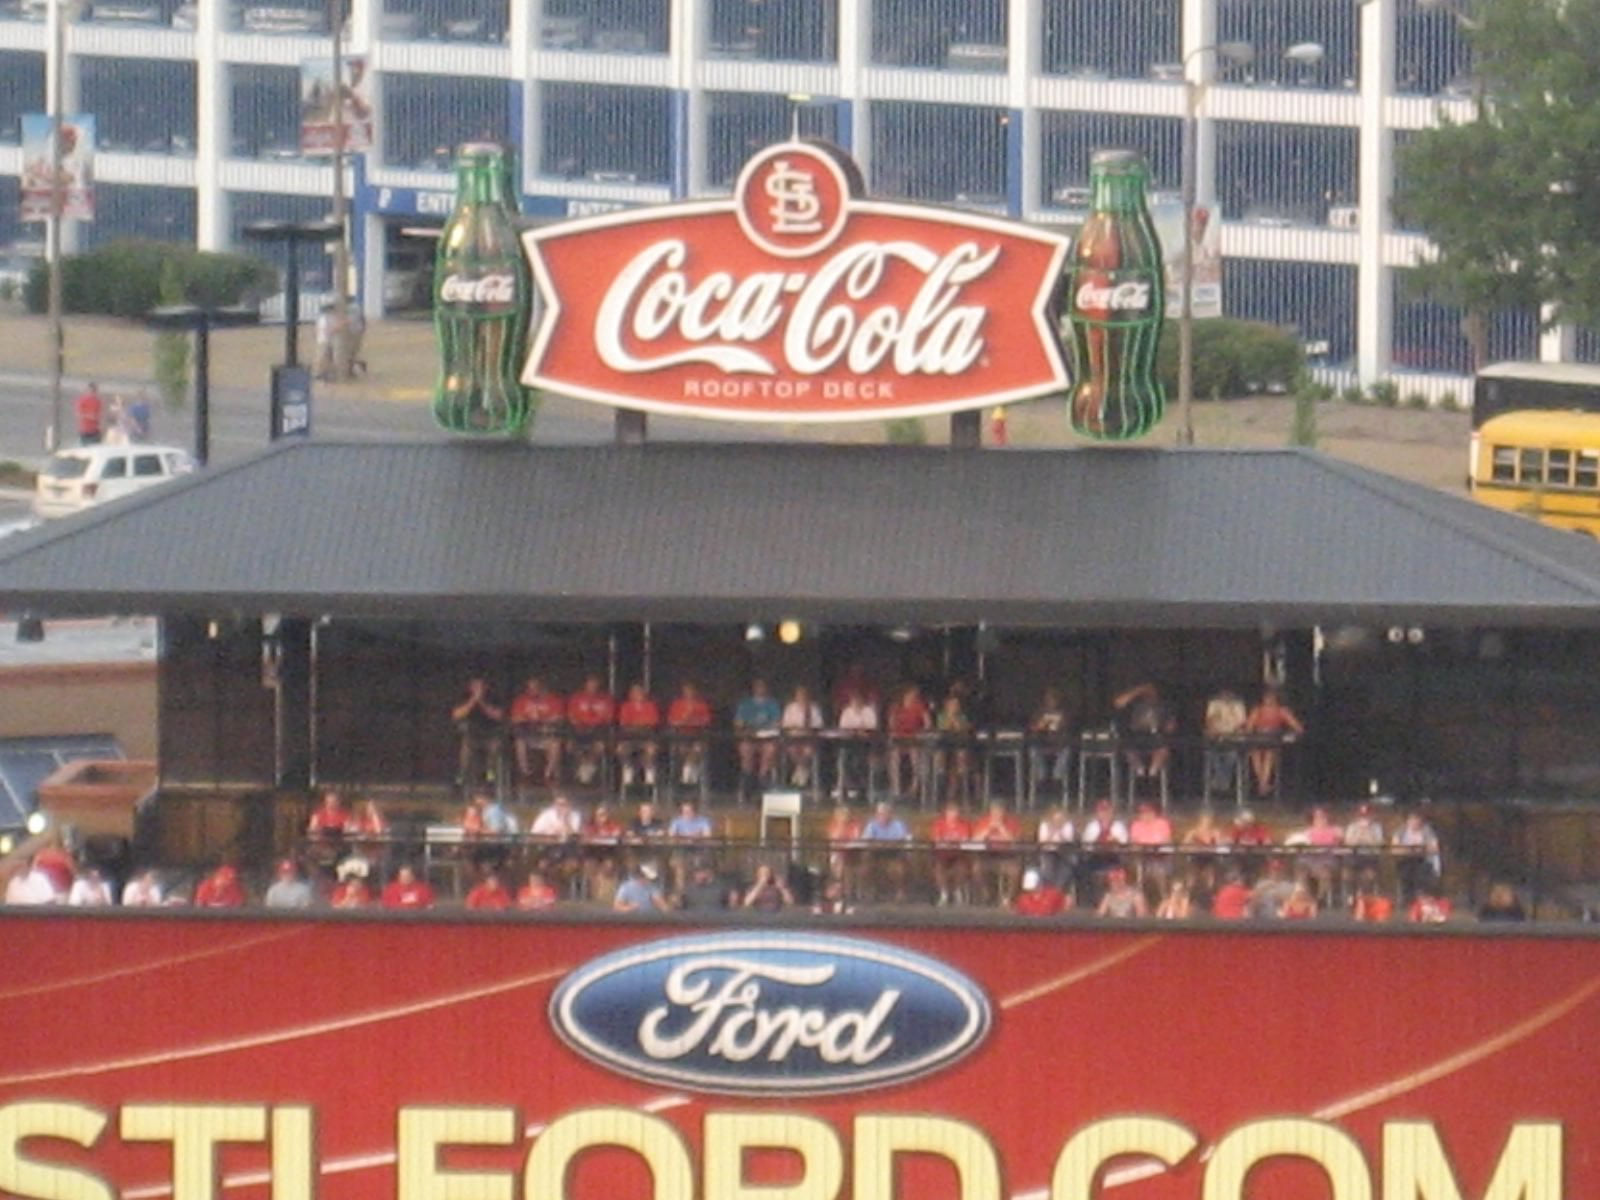 busch stadium coca cola rooftop deck. Black Bedroom Furniture Sets. Home Design Ideas